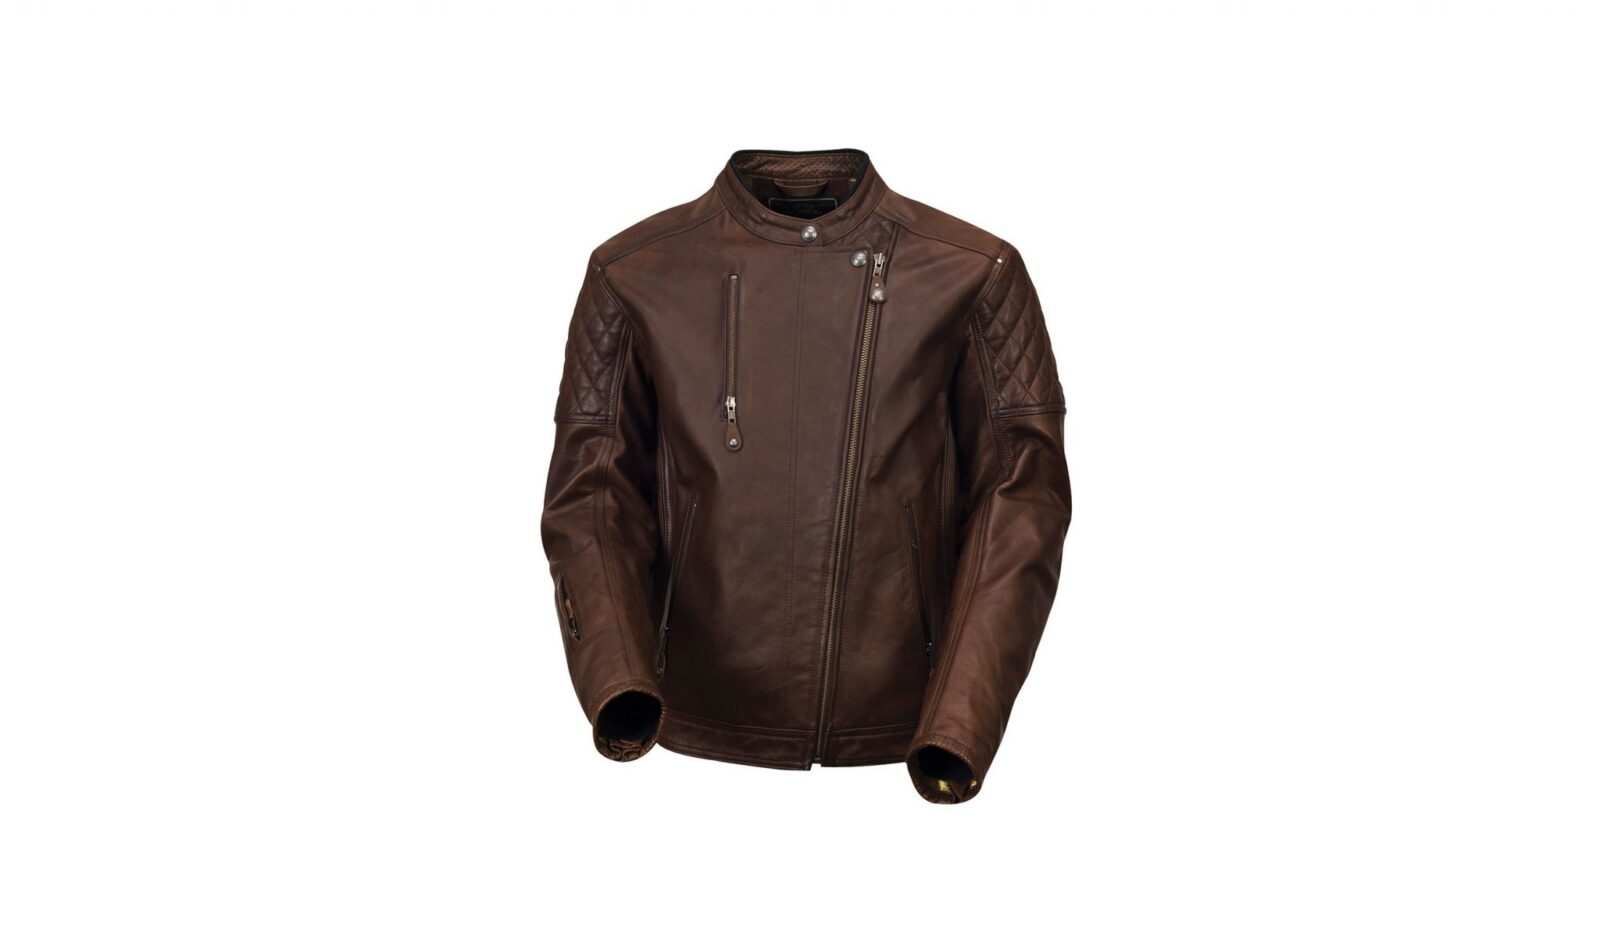 Roland Sands Design Clash Jacket 1600x925 - The Roland Sands Design Clash Jacket